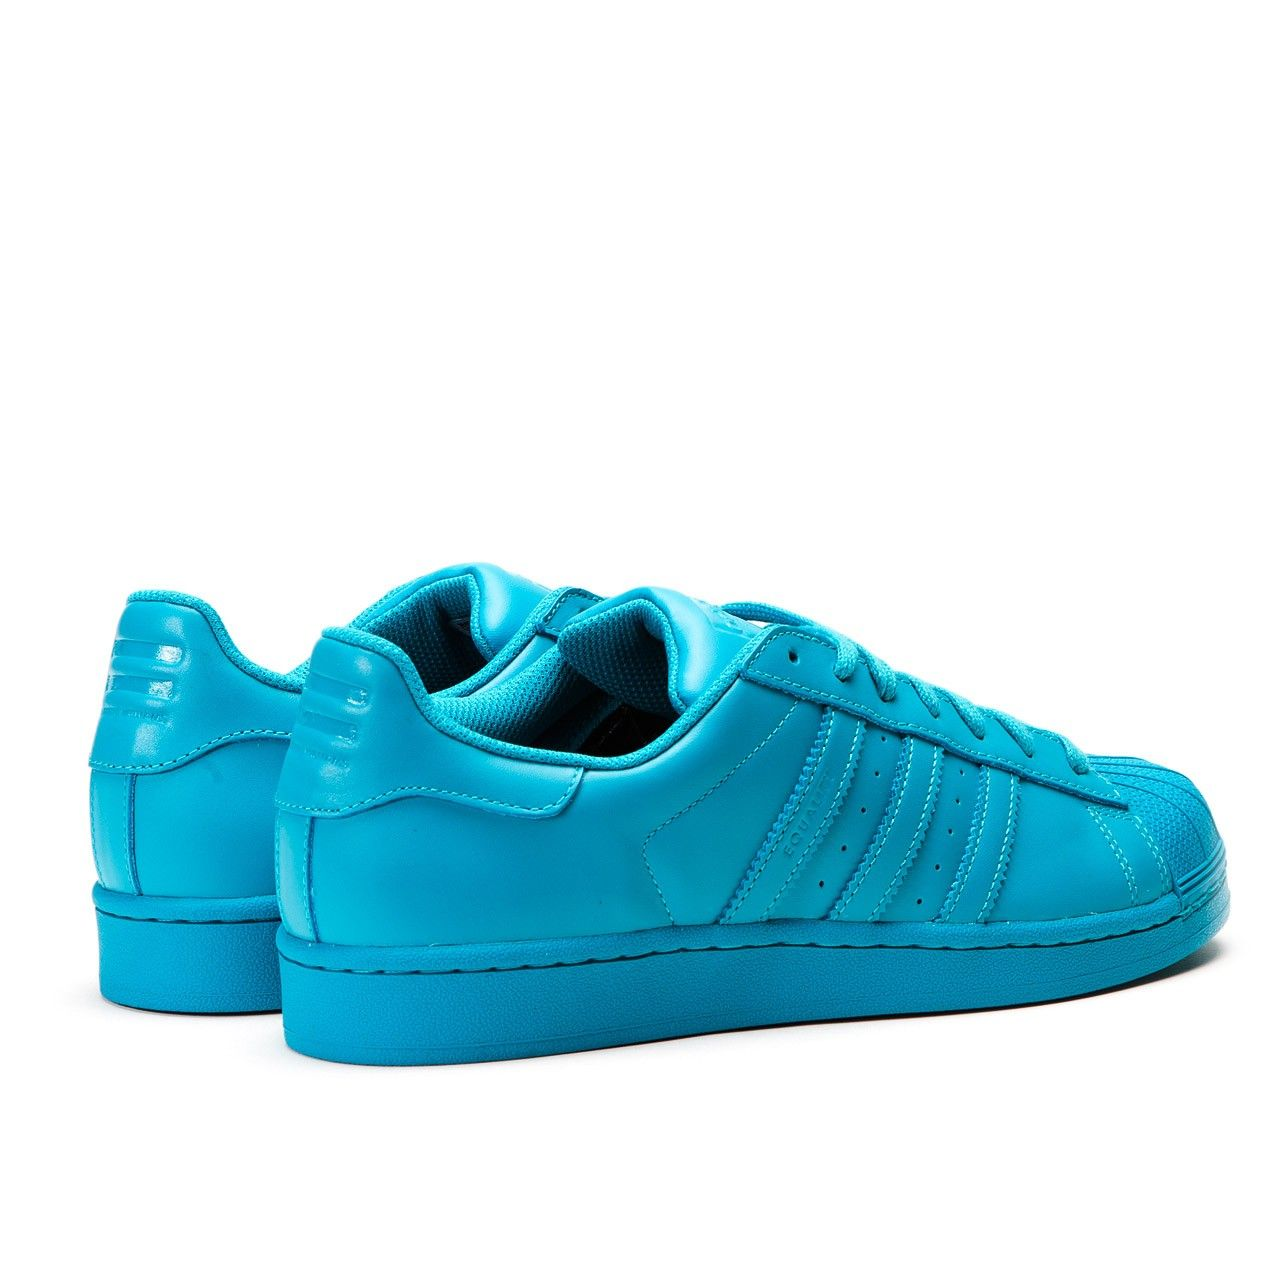 Startseite Adidas X Pharrell Williams Superstar Quot Supercolor Paquet